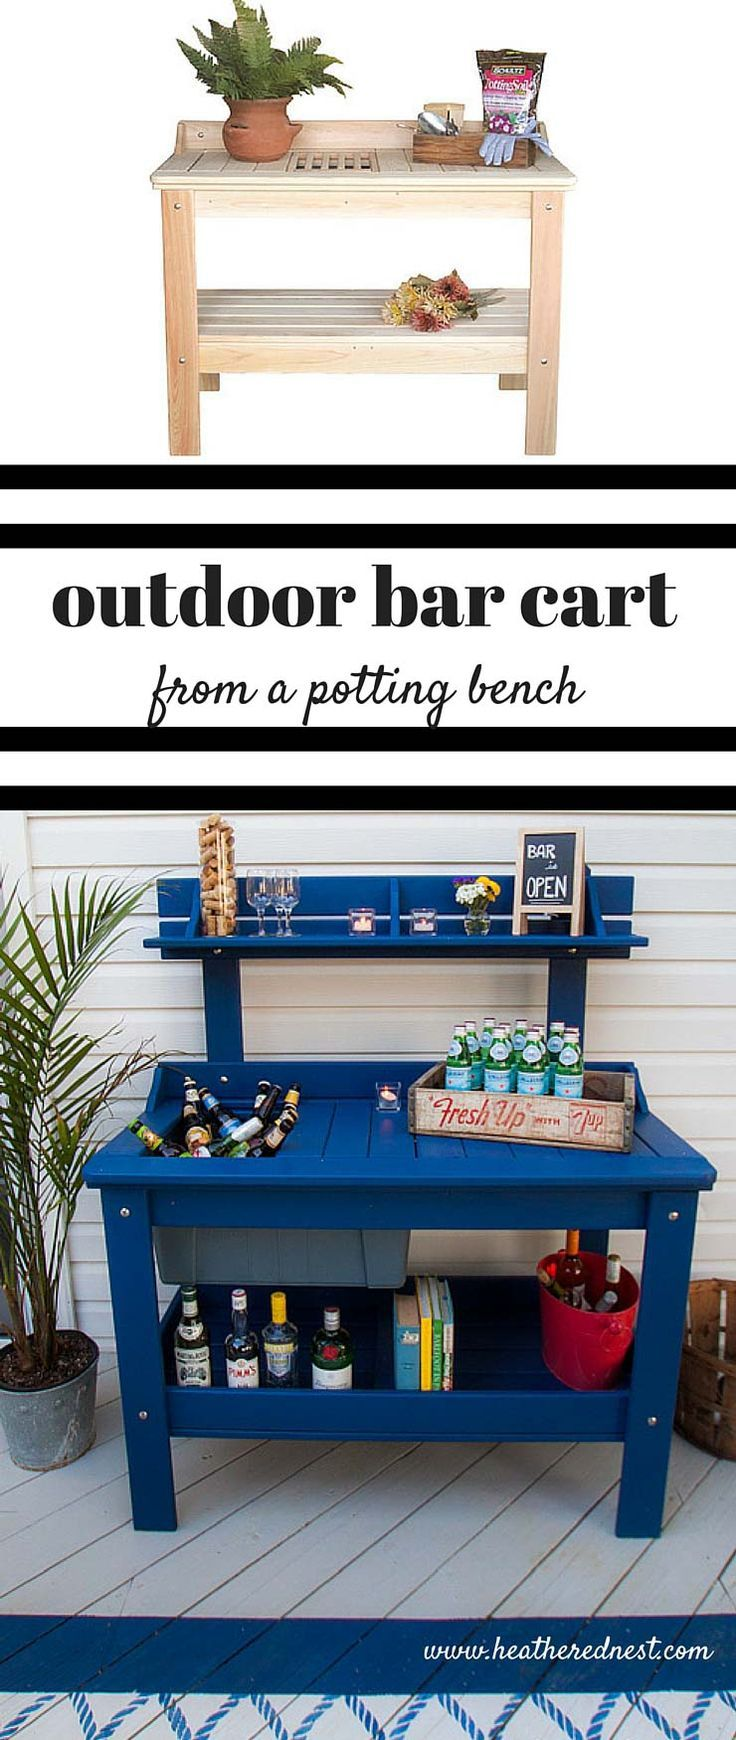 Best 25+ Outdoor Bars Ideas On Pinterest | Backyard Bar, Patio Ideas Bbq  And Outdoor Grill Area